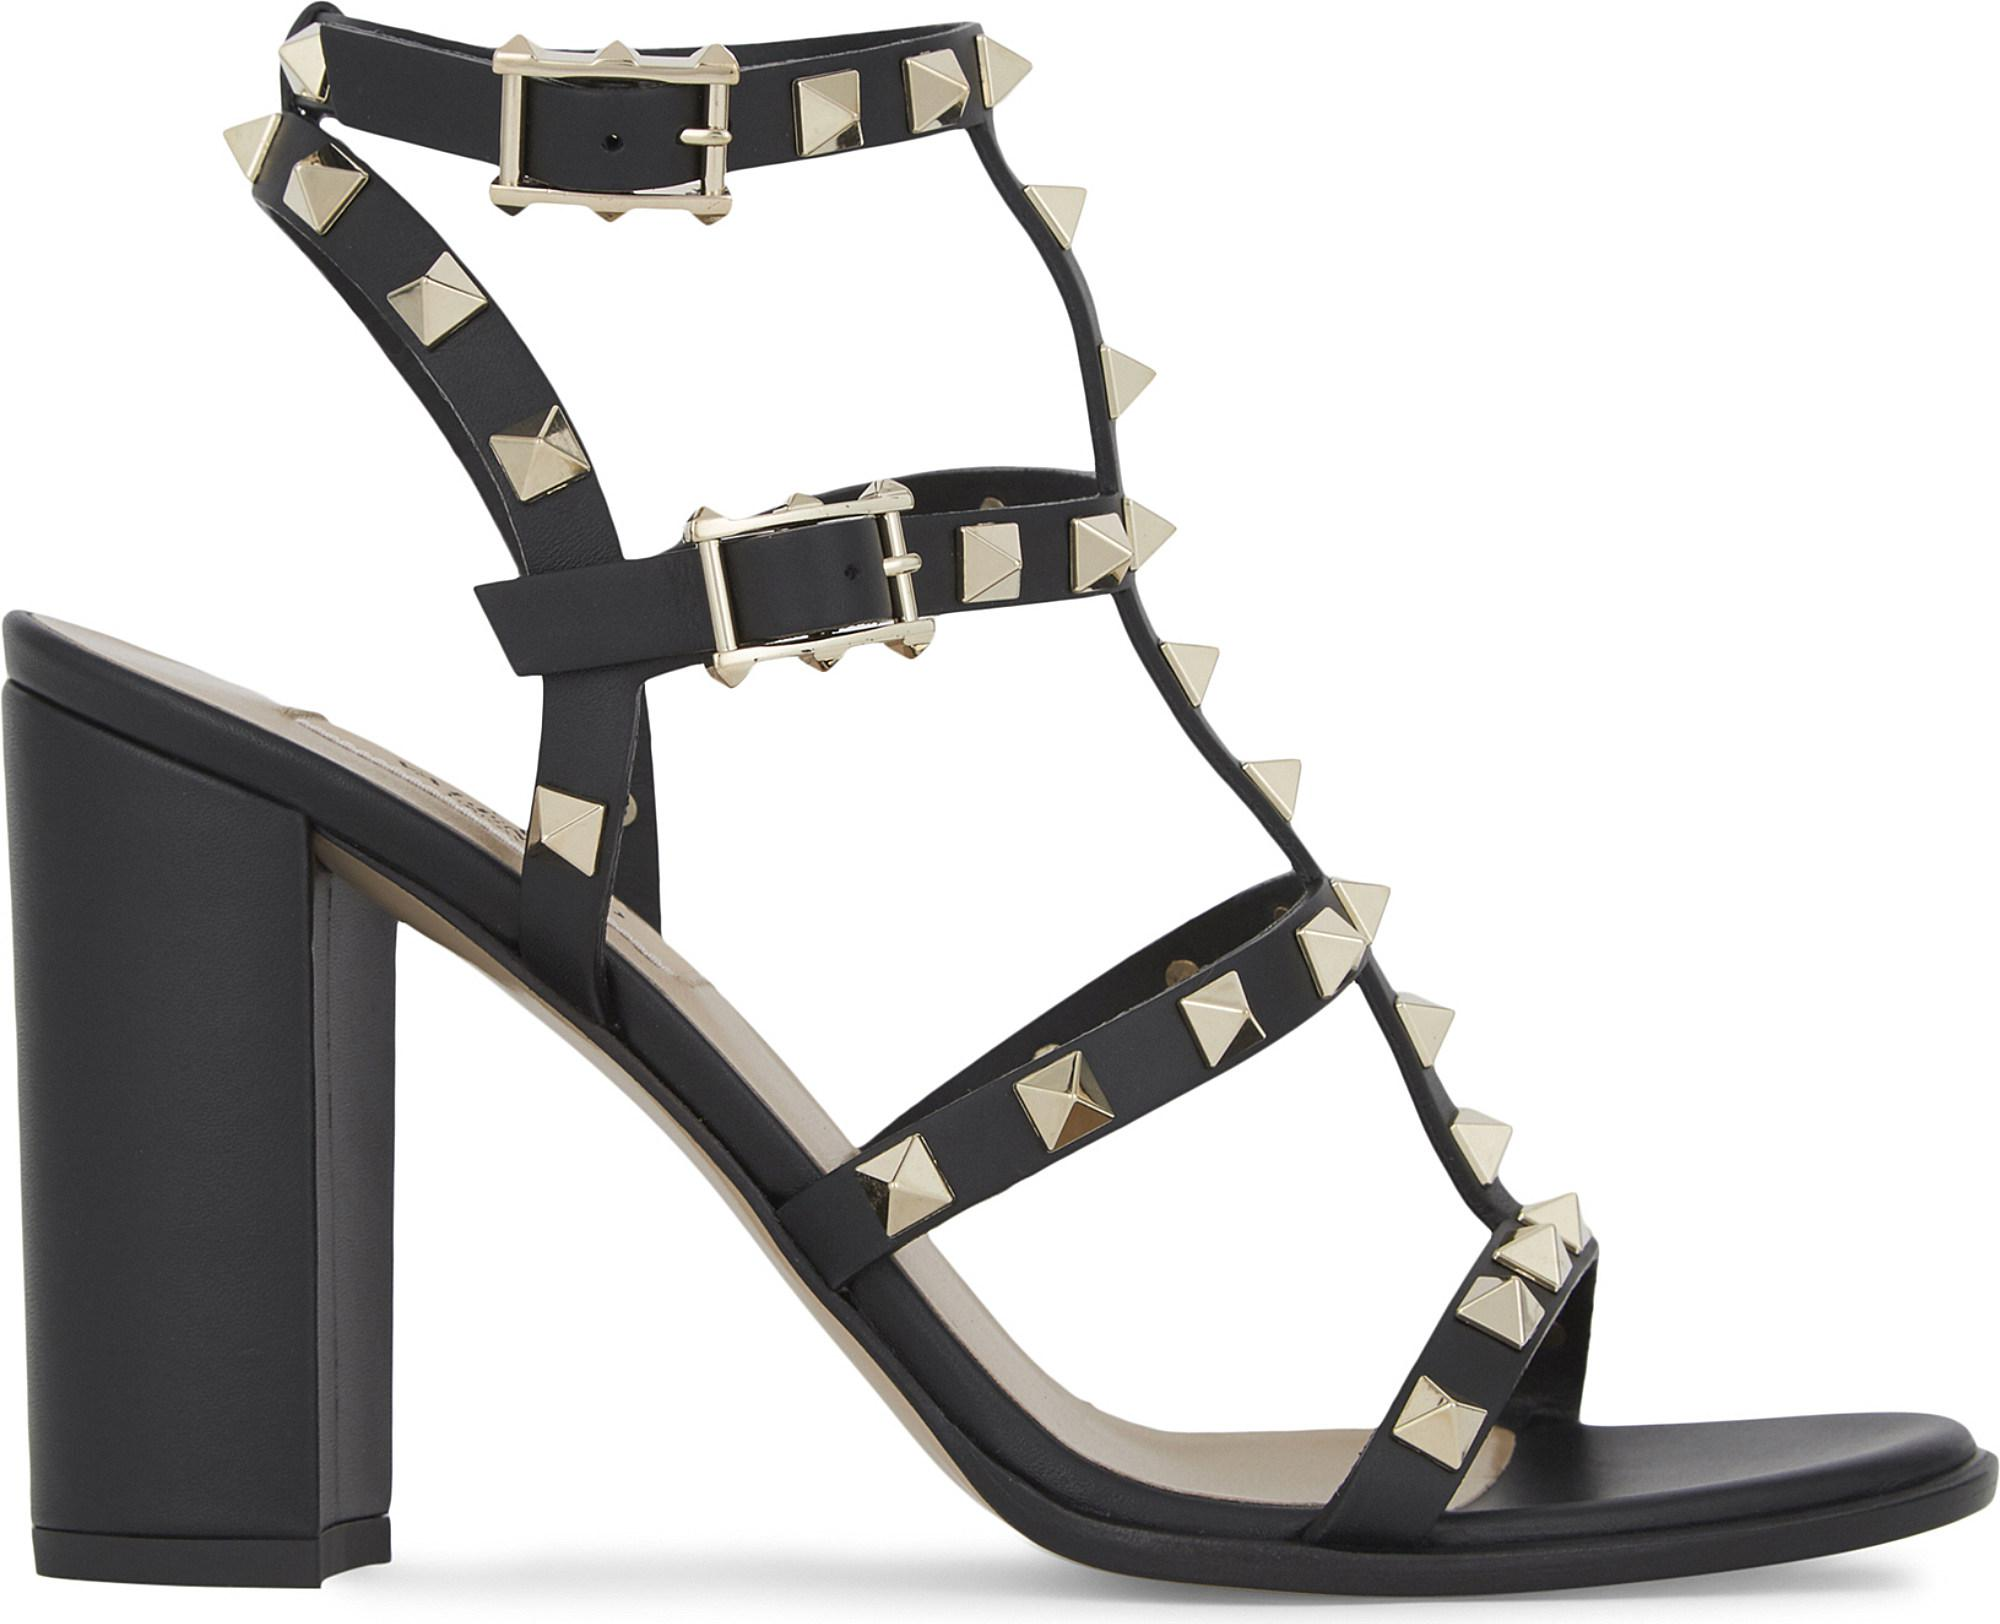 2a273ee97d7 Lyst - Valentino Rockstud 90 Leather Heeled Sandals in Black - Save 22%